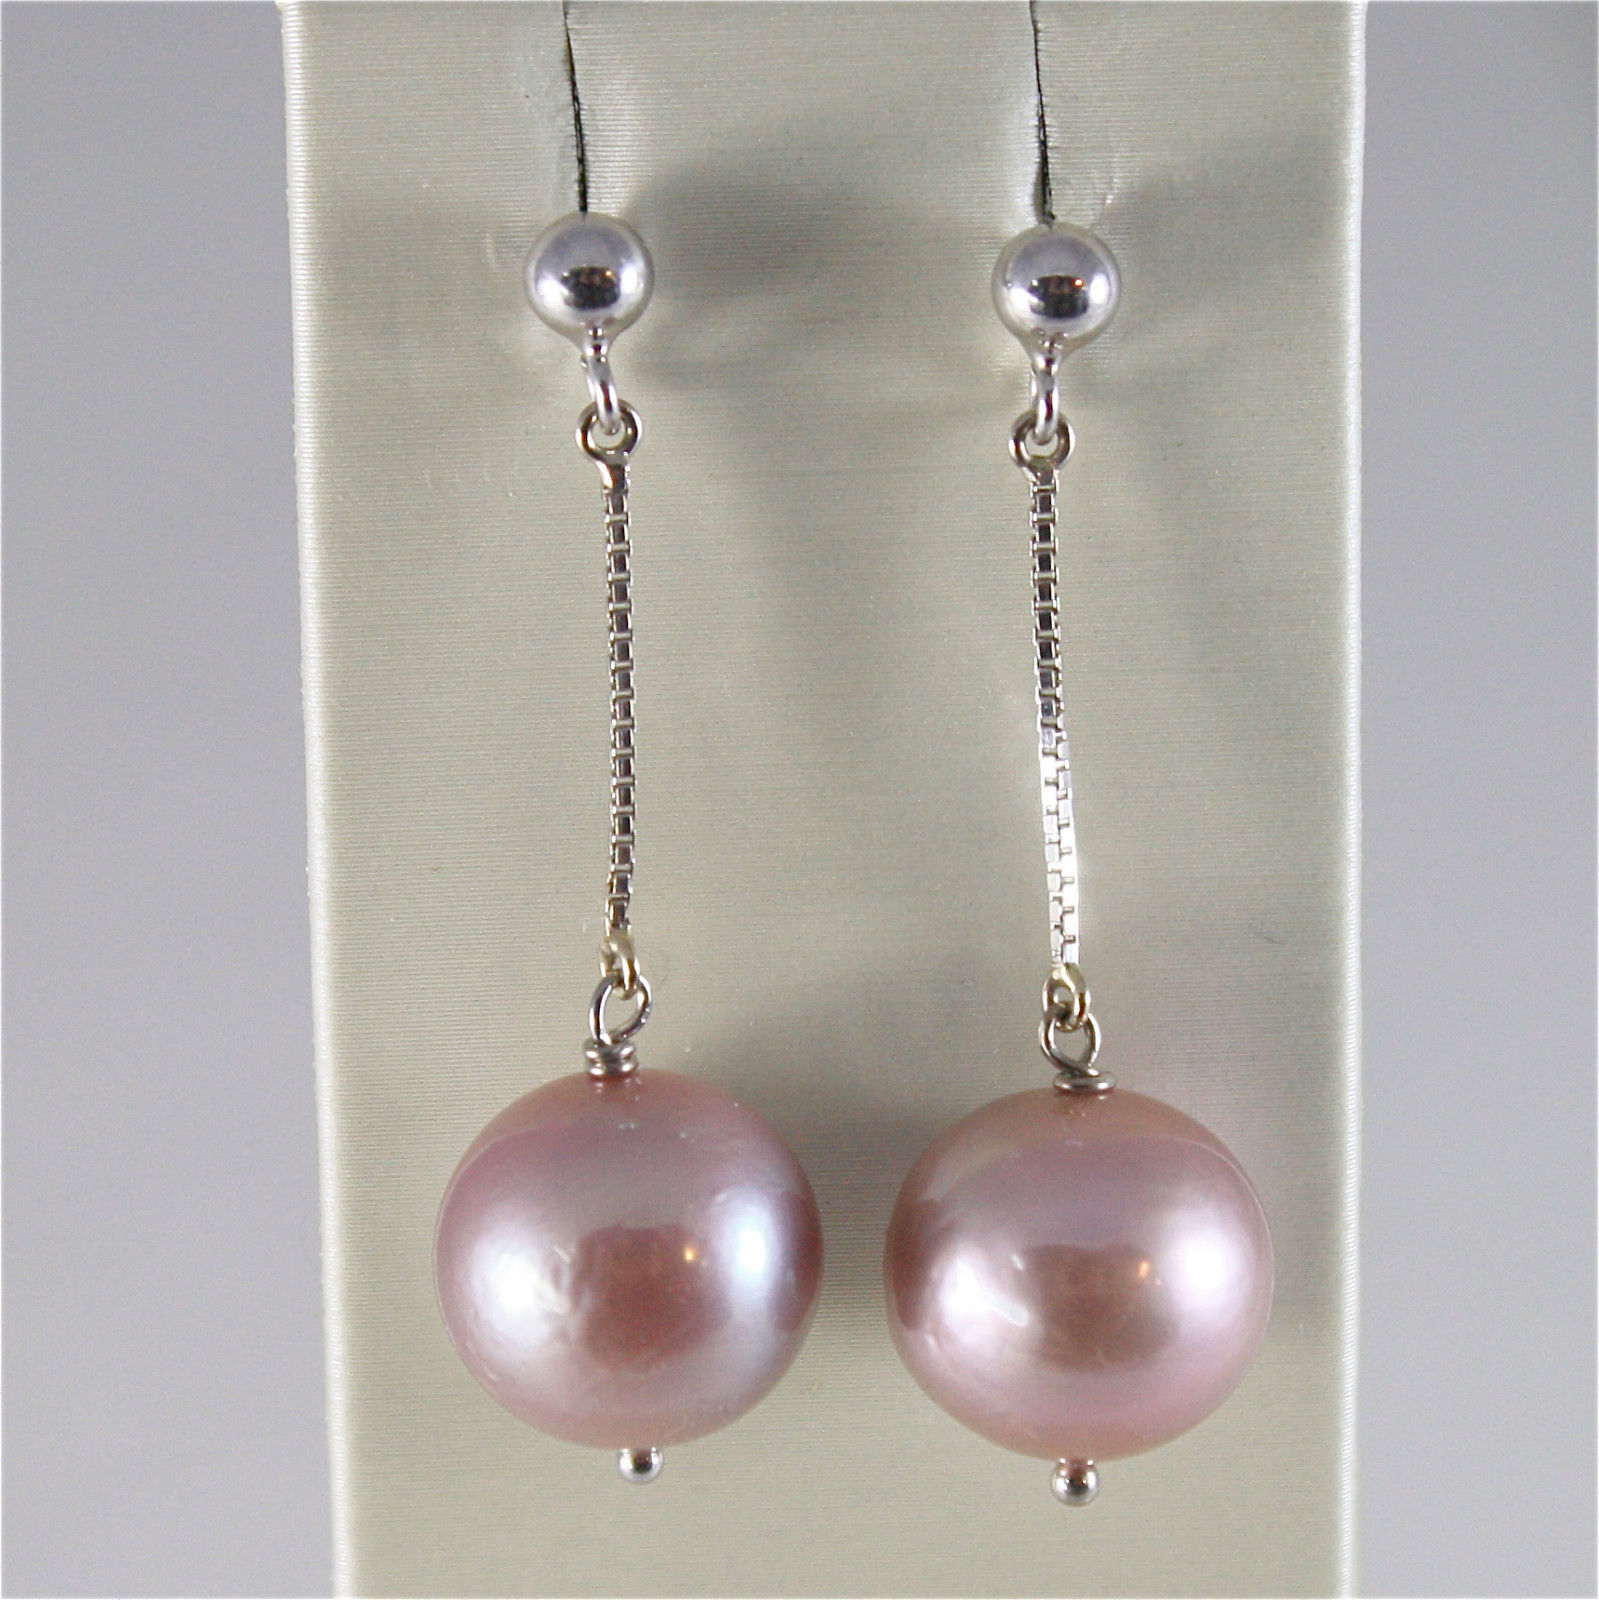 18K WHITE GOLD EARRINGS WITH PURPLE ROUND FRESHWATER PEARLS 13 MM MADE IN ITALY